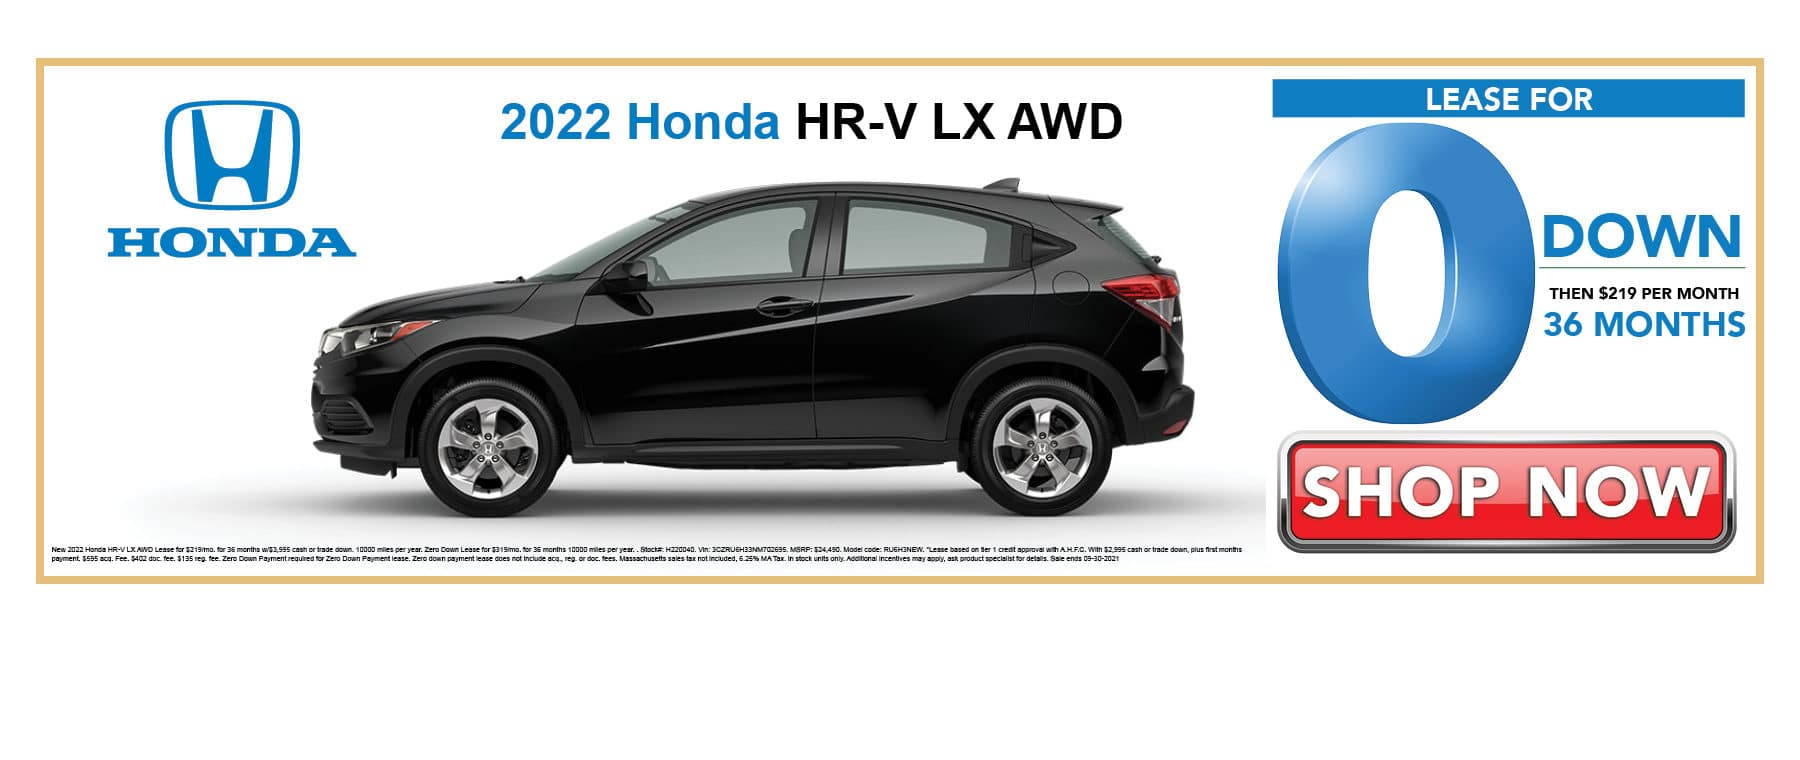 Lease 2022 Honda HR-V LX for 0 Down then $219 per Month for 36 Months